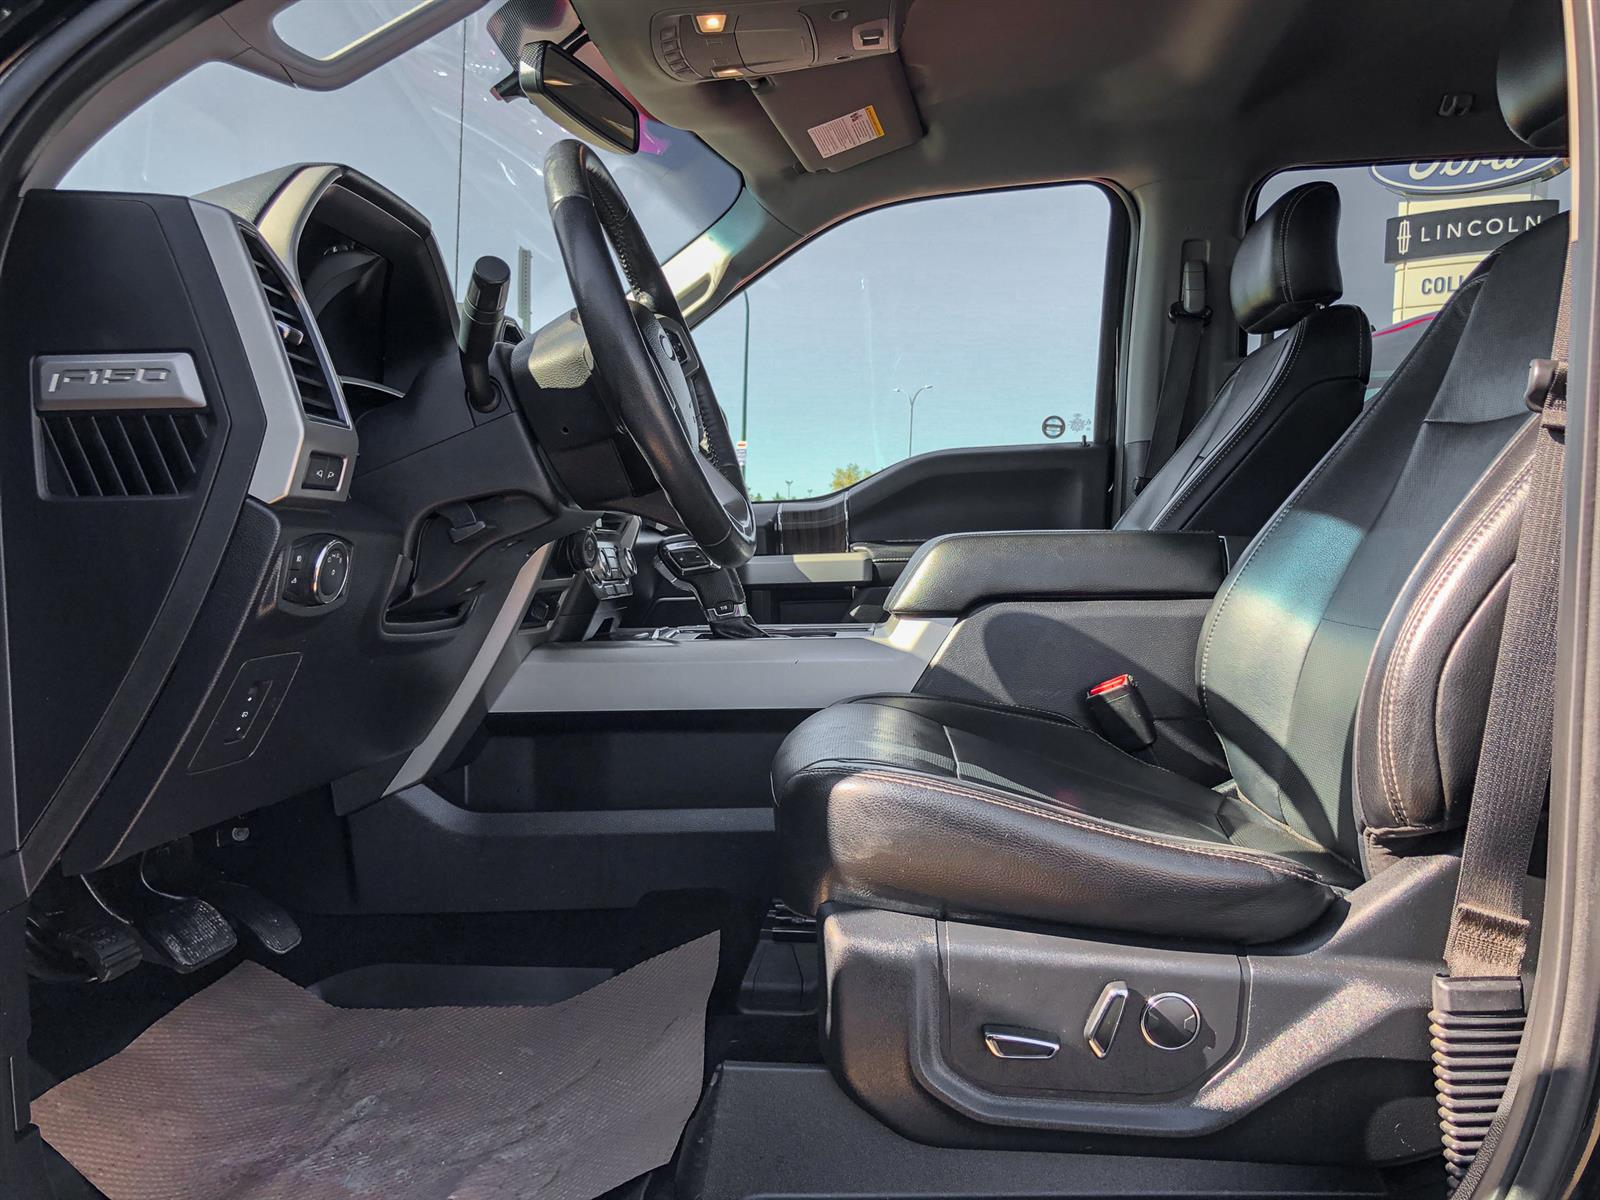 2017 Ford F-150 LARIAT | 3.5L V6 ECOBOOST | 4X4 | MOONROOF | VOICE-ACTIVATED NAV